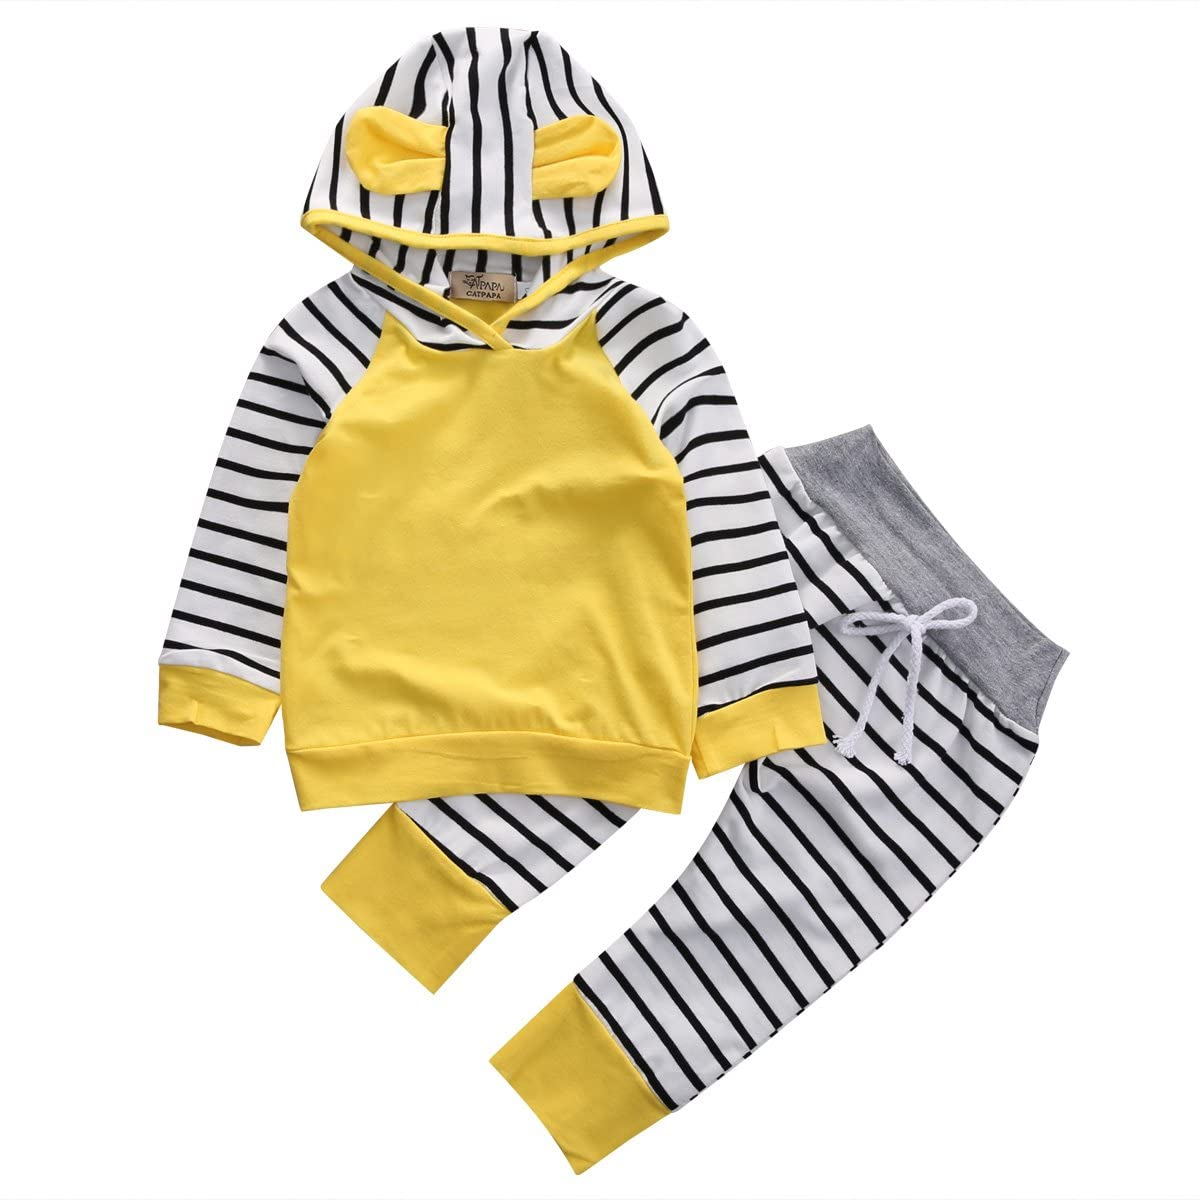 NEEXIJI 2Pcs Baby Boy Girl Hooded Sweatshirt Striped Outfits Long Sleeve Toddler Kids Fall Clothes